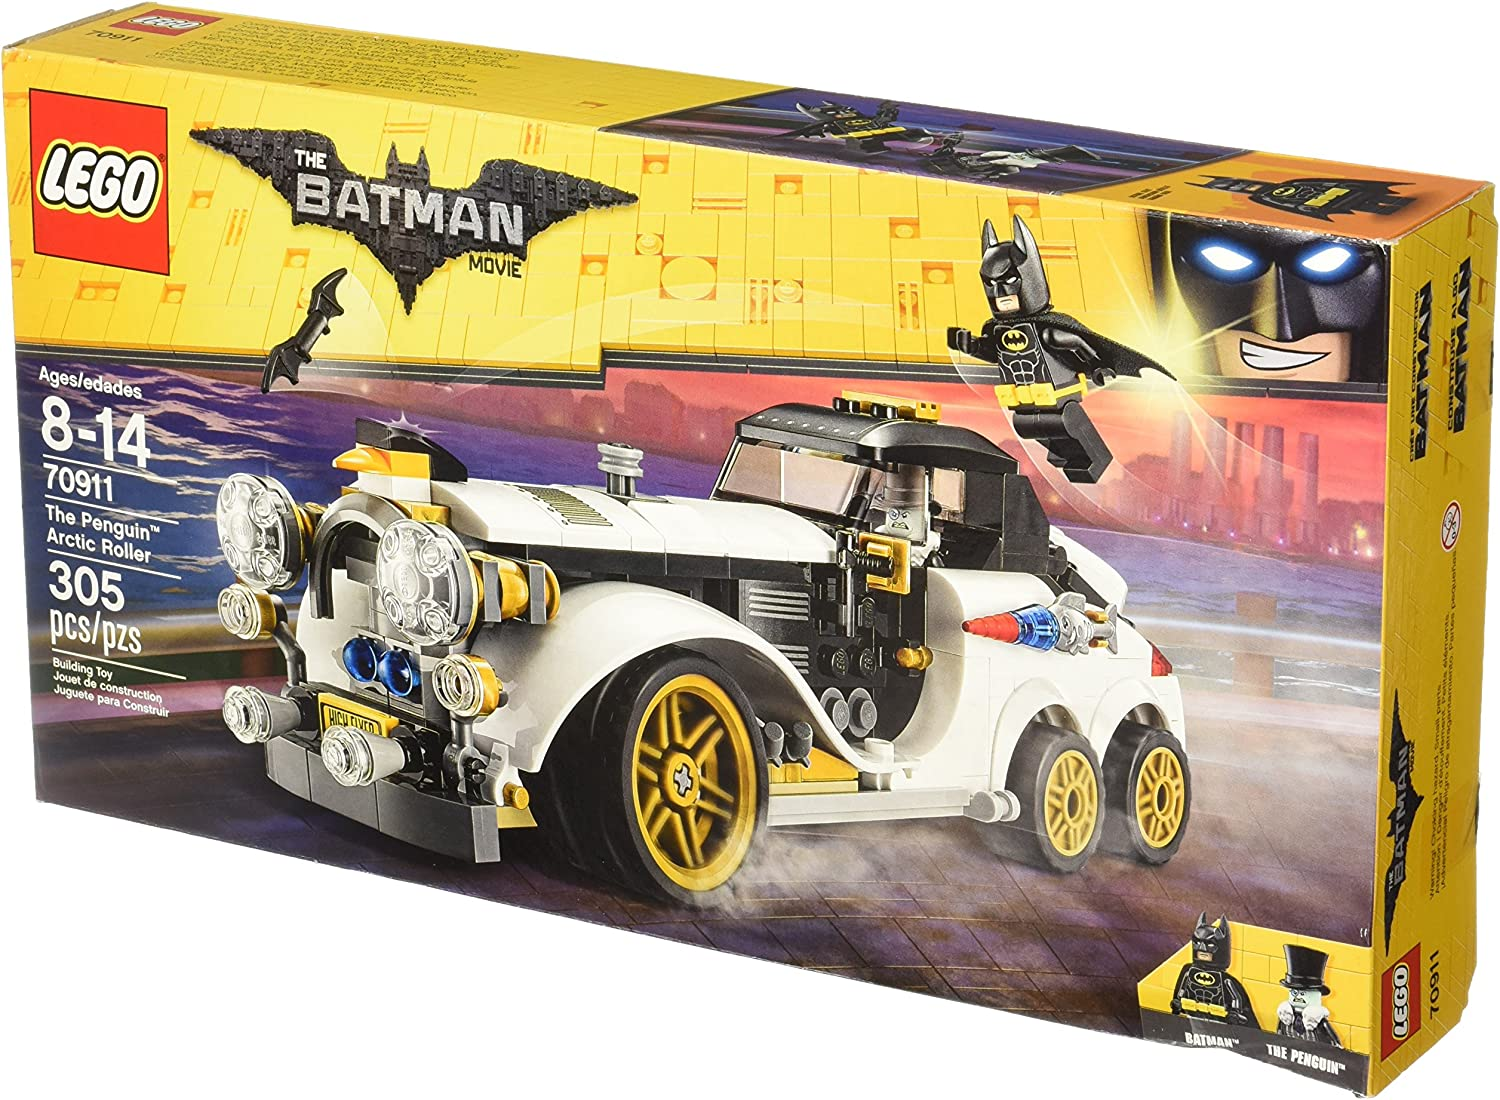 Amazon Com Lego Batman Movie The Penguin Arctic Roller 70911 Building Kit Toys Games